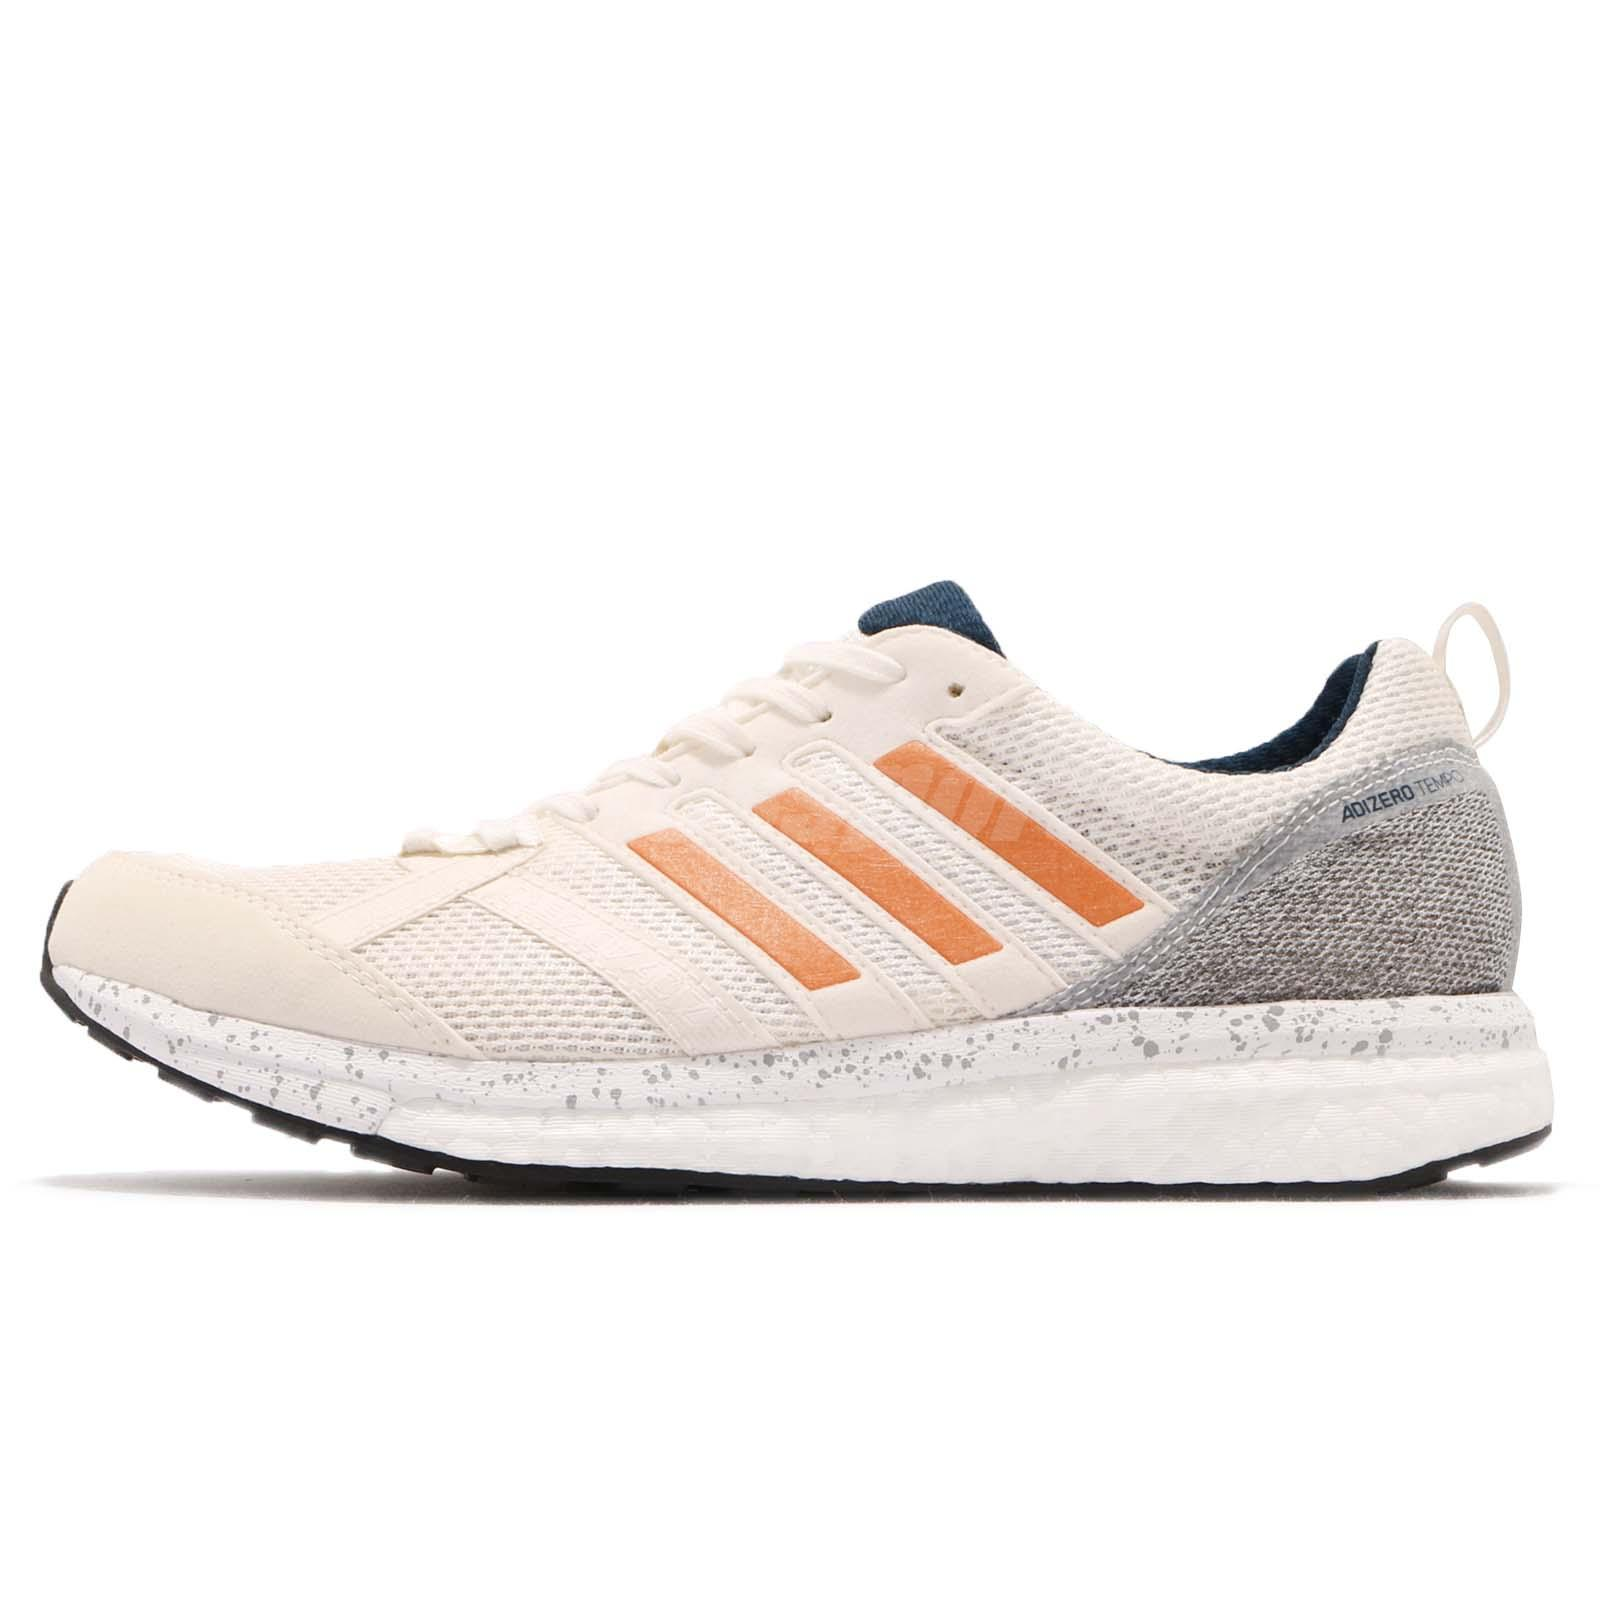 low priced f8e47 a1412 adidas Adizero Tempo 9 M Boost Off White Hi Res Orange Men Running Shoes  BB6433